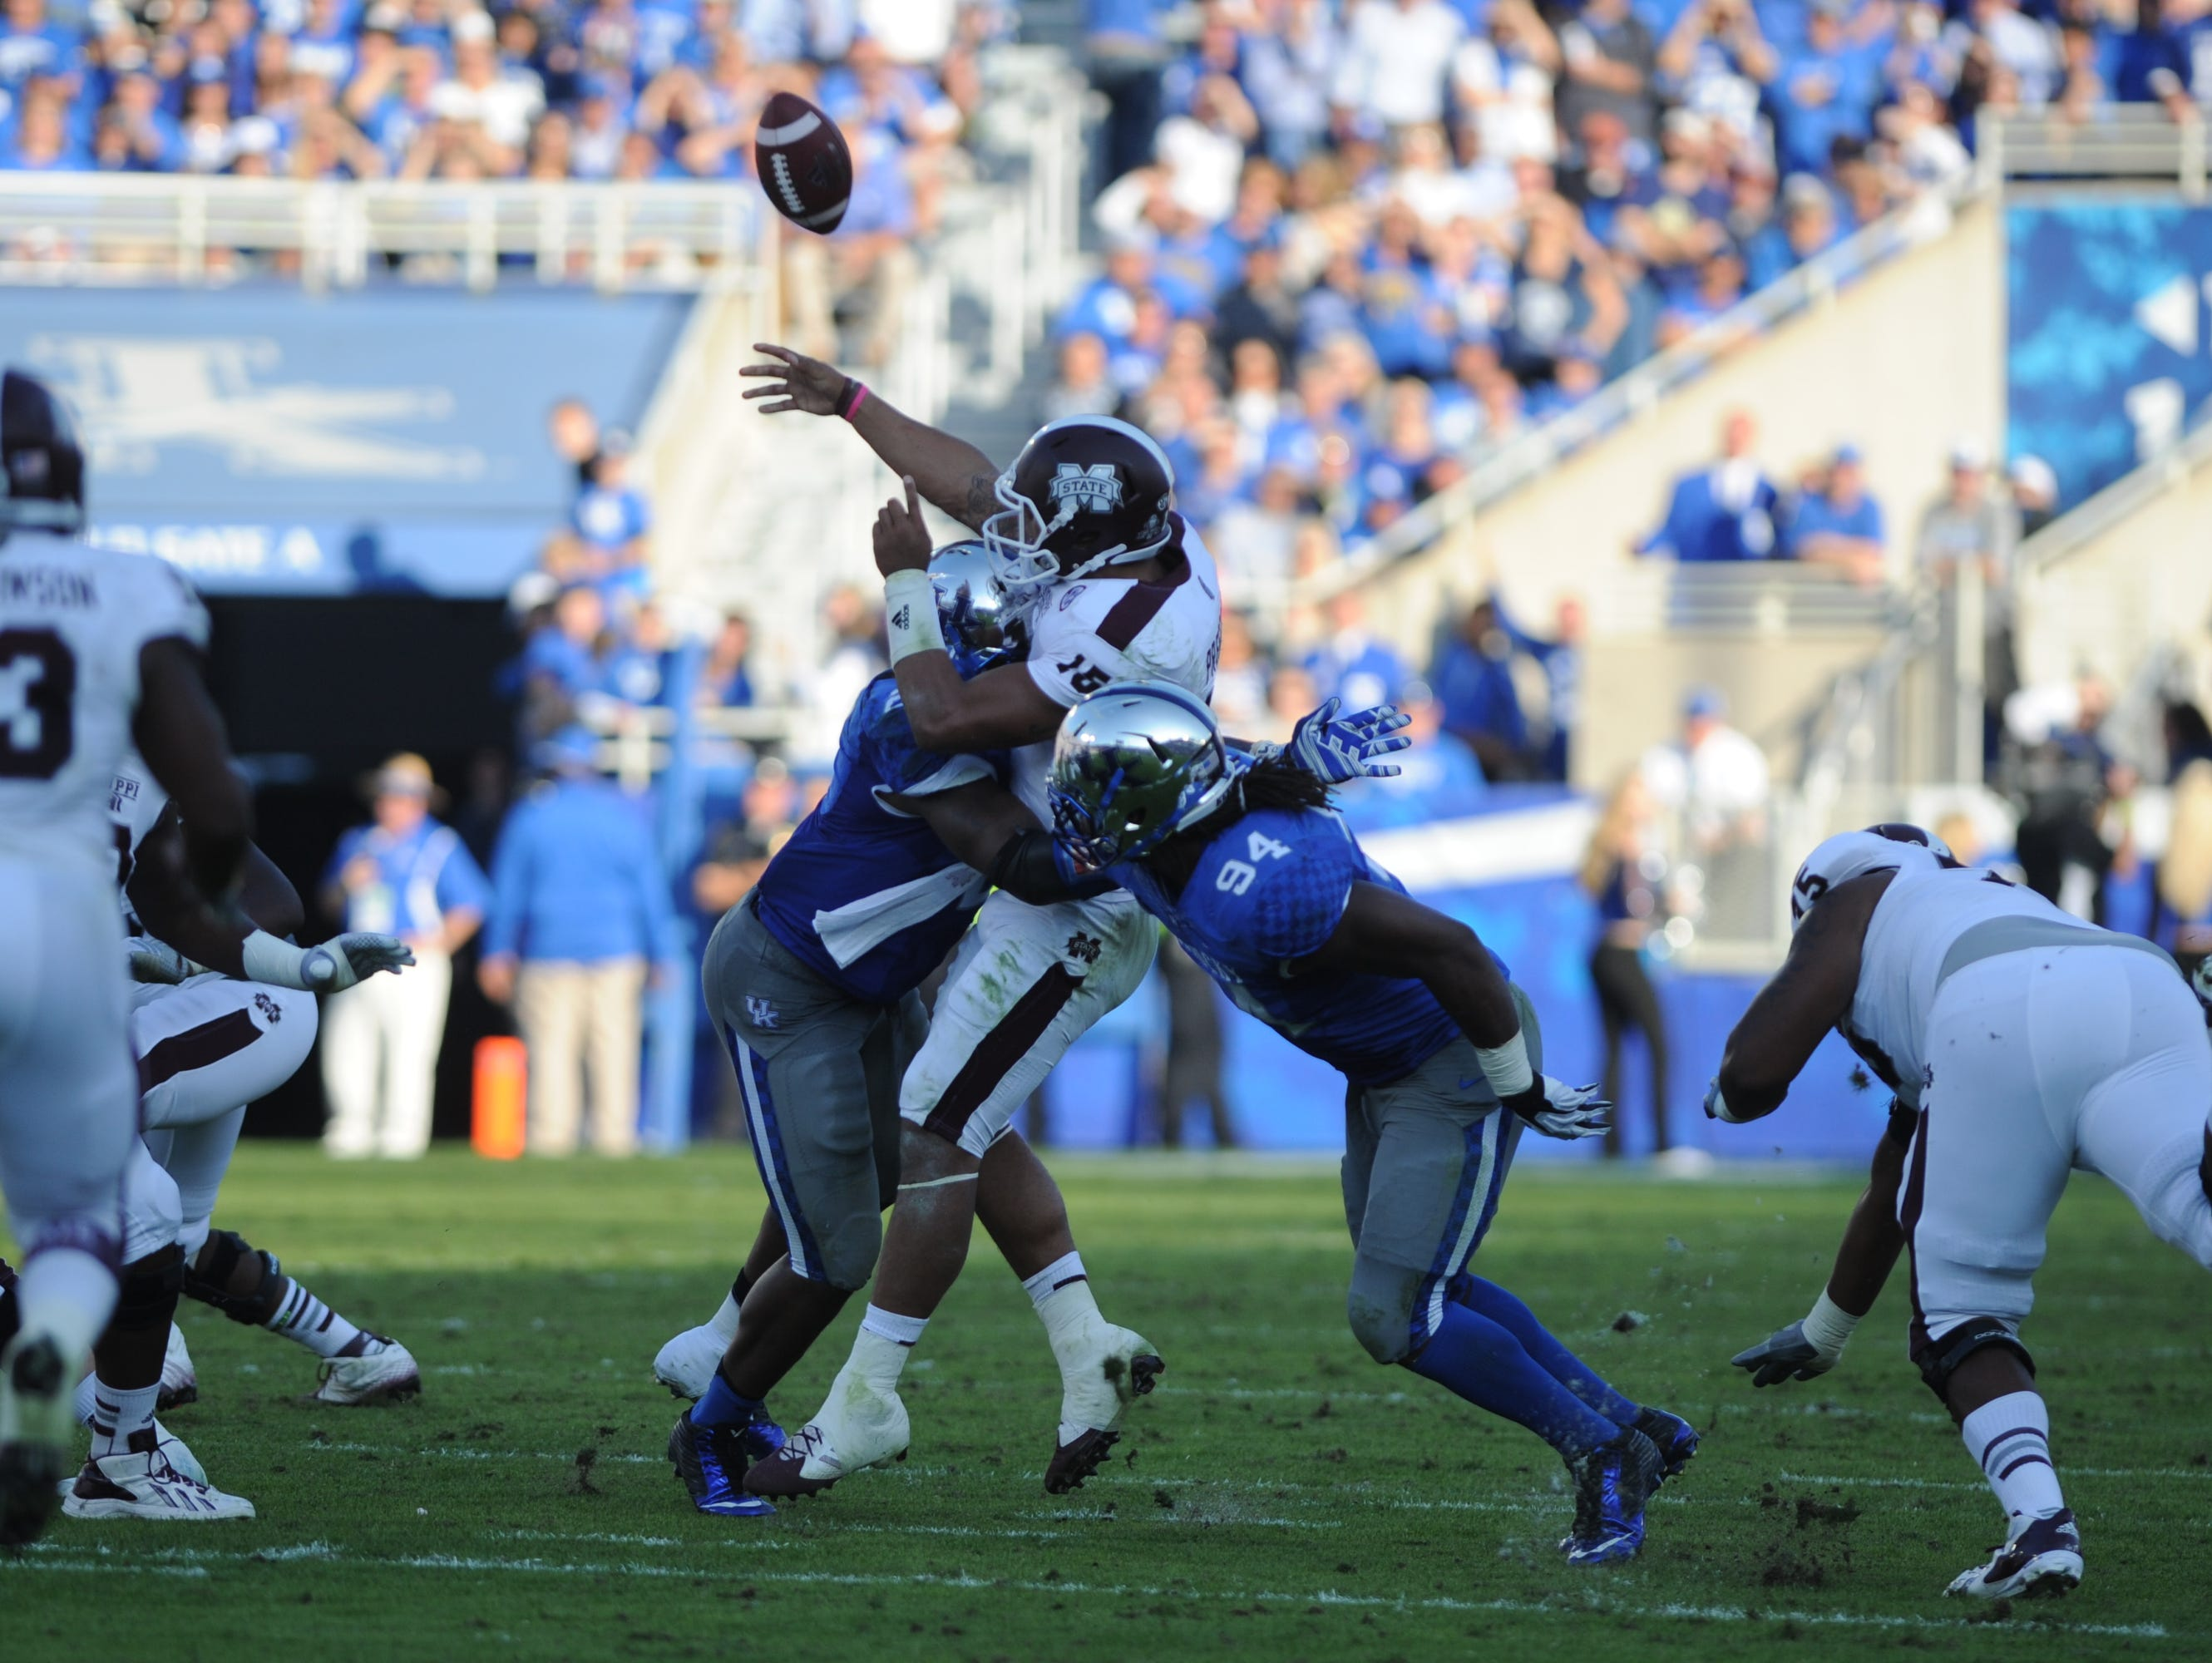 "UK DE Alvin ""Bud"" Dupree hits Miss St QB Dak Prescott as he releases the ball, causing an interception, during the first half of the University of Kentucky football game against Mississippi State in Lexington, Ky. Saturday, October 25, 2014."